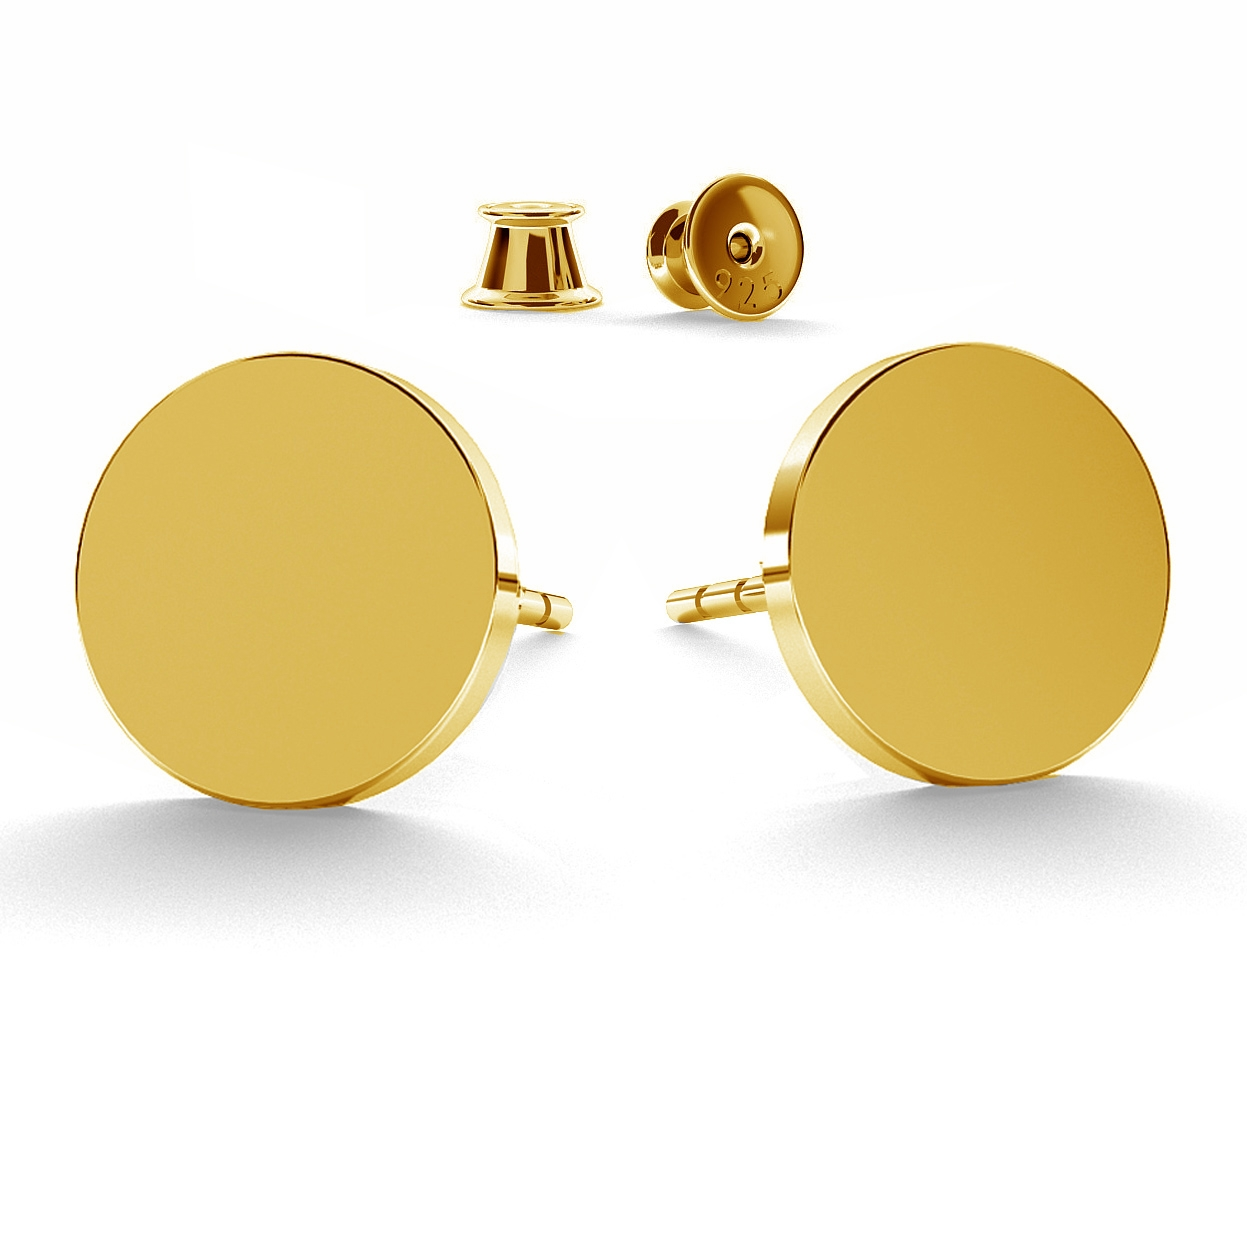 ROUND FLAT 11 MM EARRINGS - BASIC